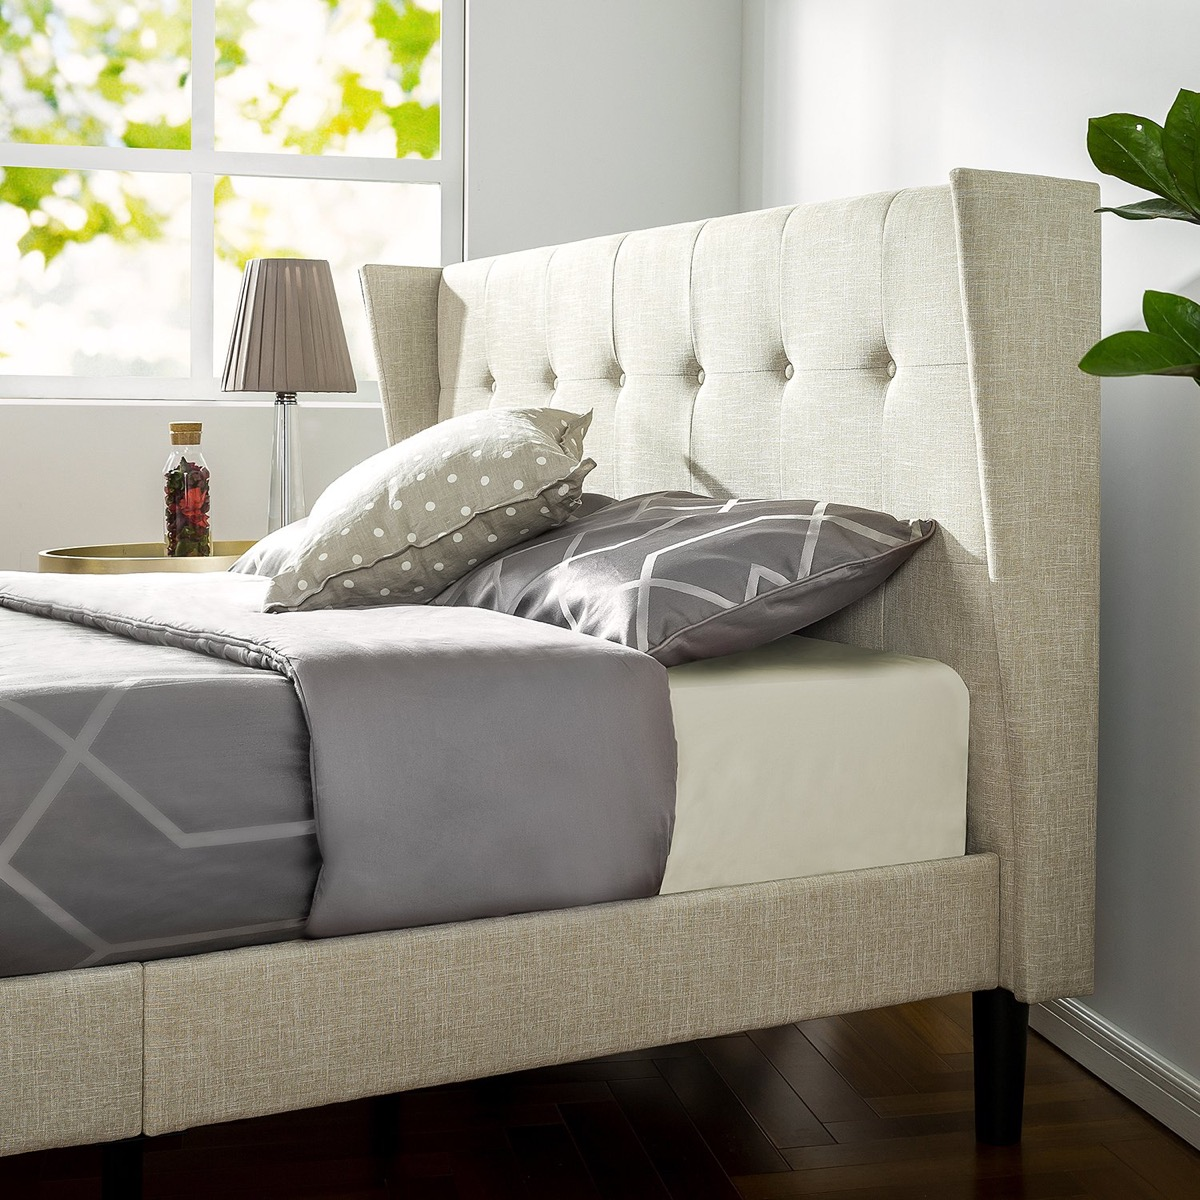 Modern Wingback Tufted Headboard Tan Canvas Contemporary Neutral Bed Frame Ideas Awesome Decors